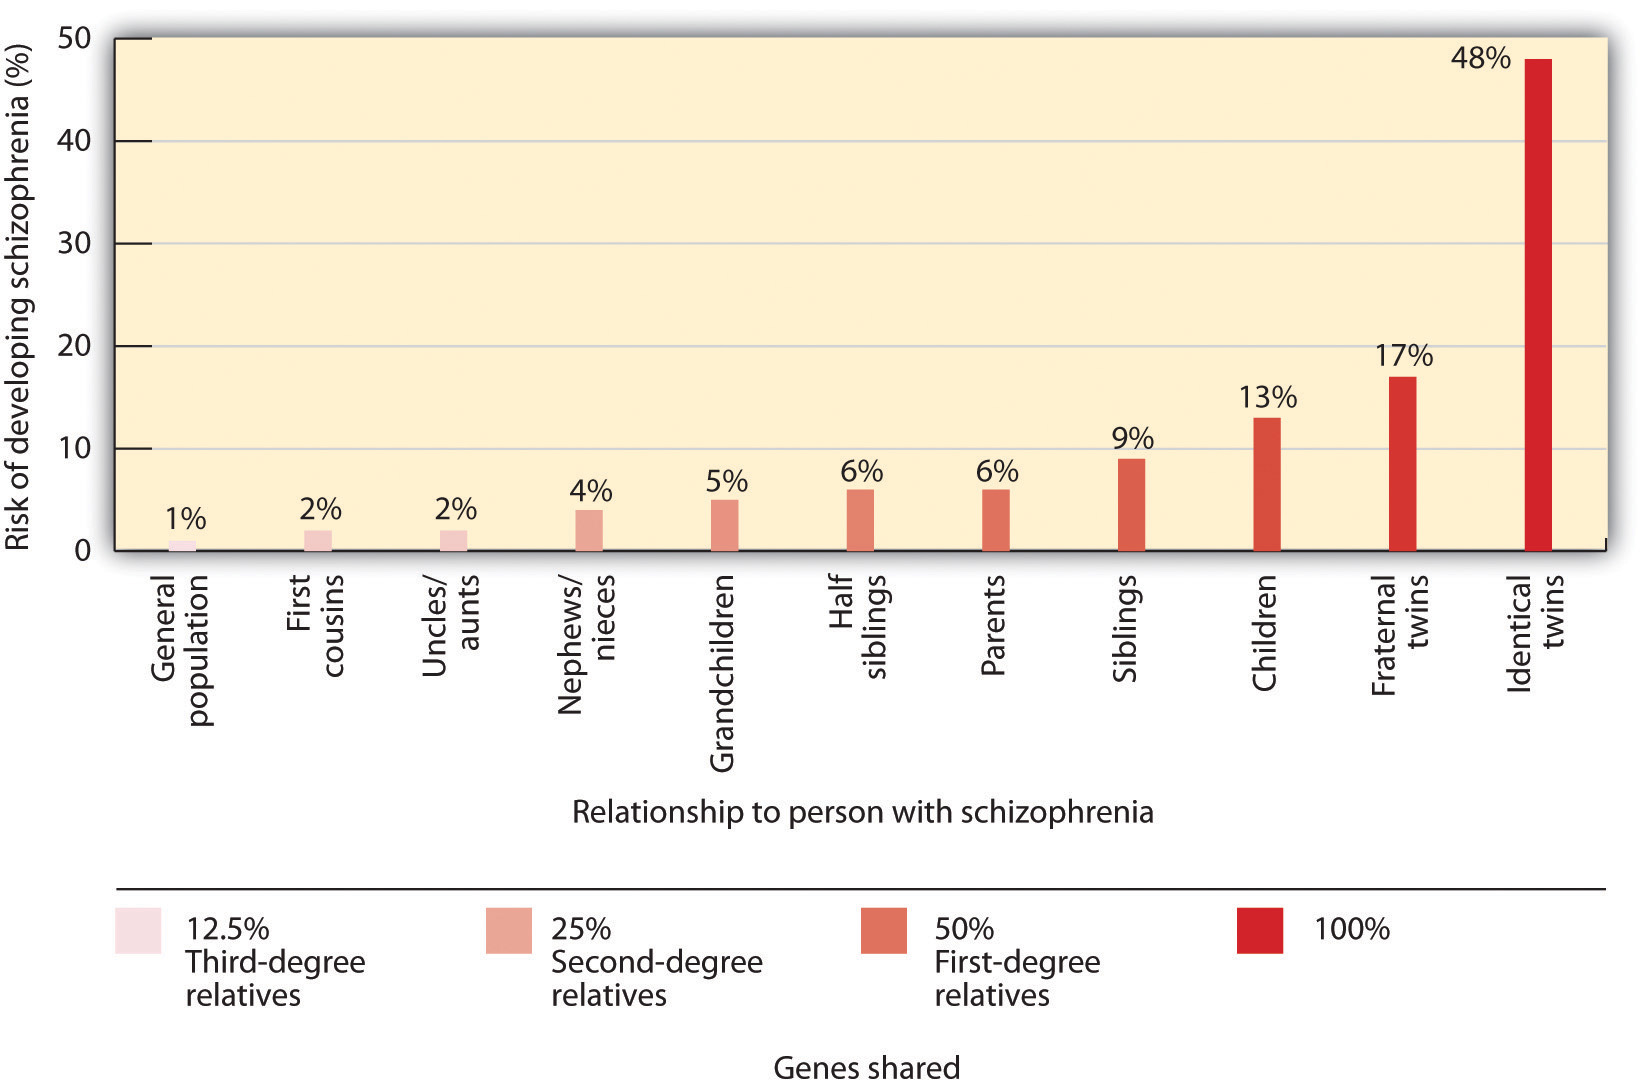 The risk of developing schizophrenia increases substantially if a person has a relative with the disease.